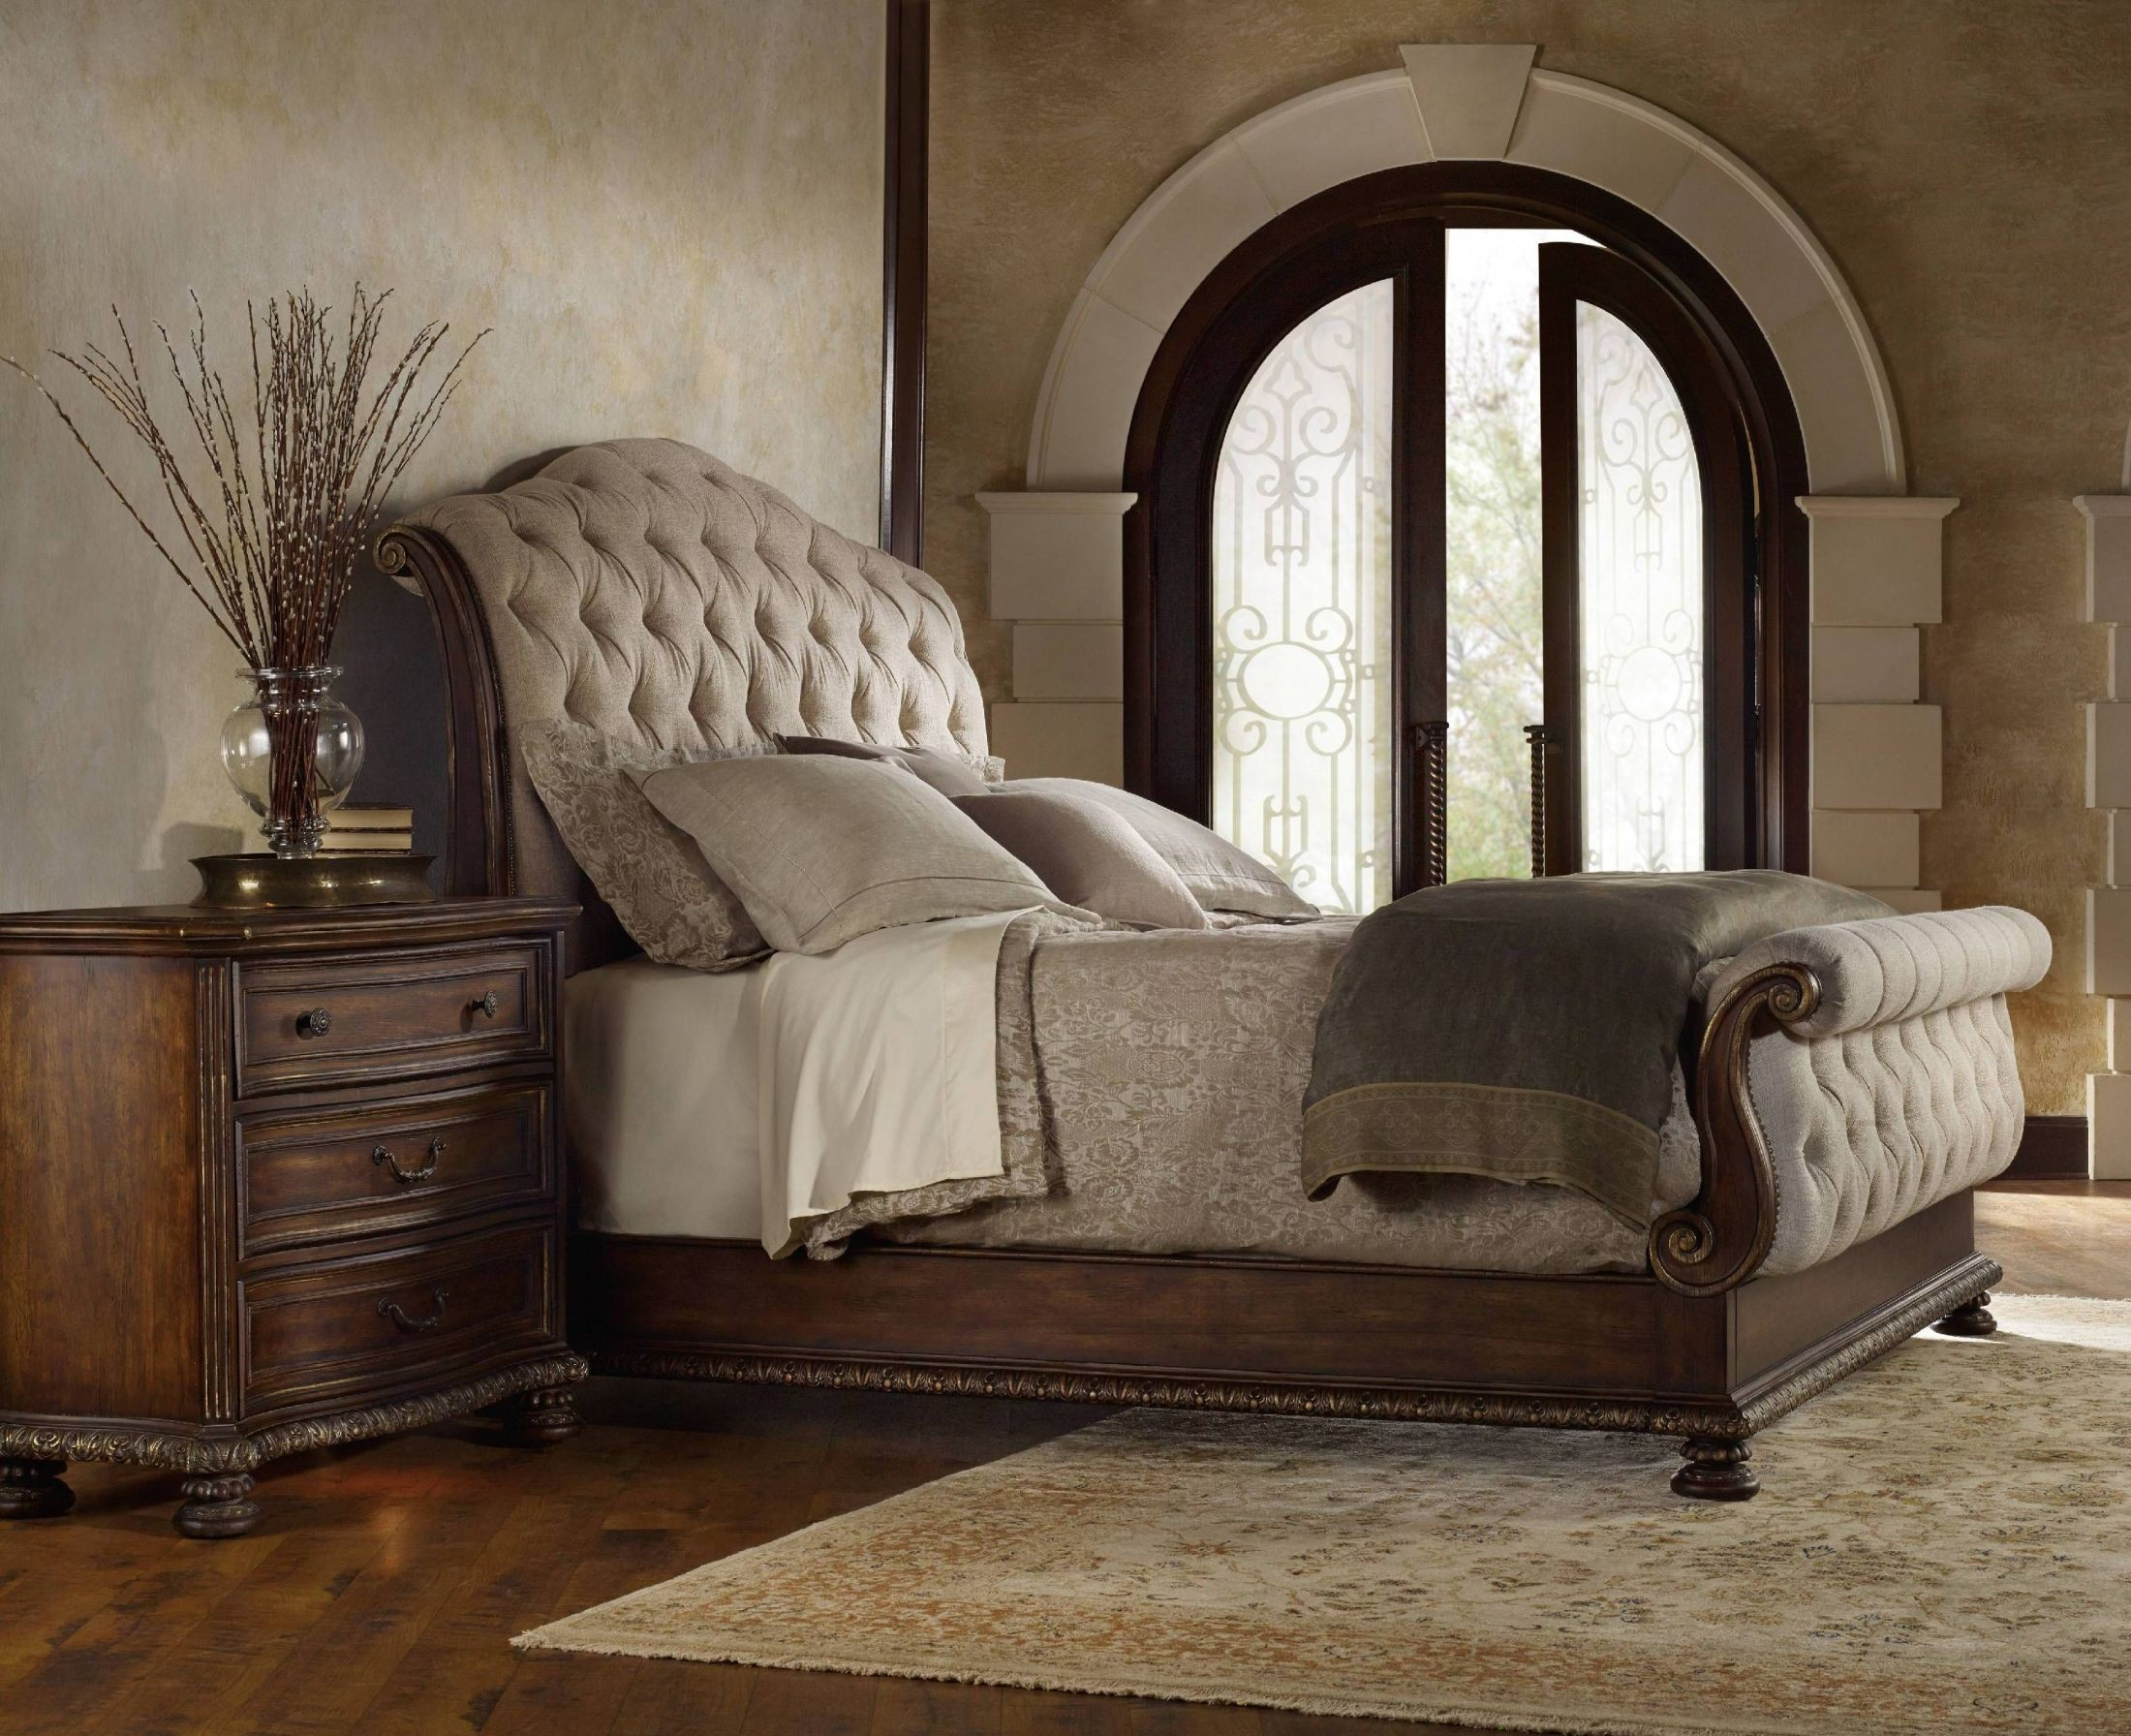 Adagio Dark Wood Tufted King Upholstered Sleigh Bed From